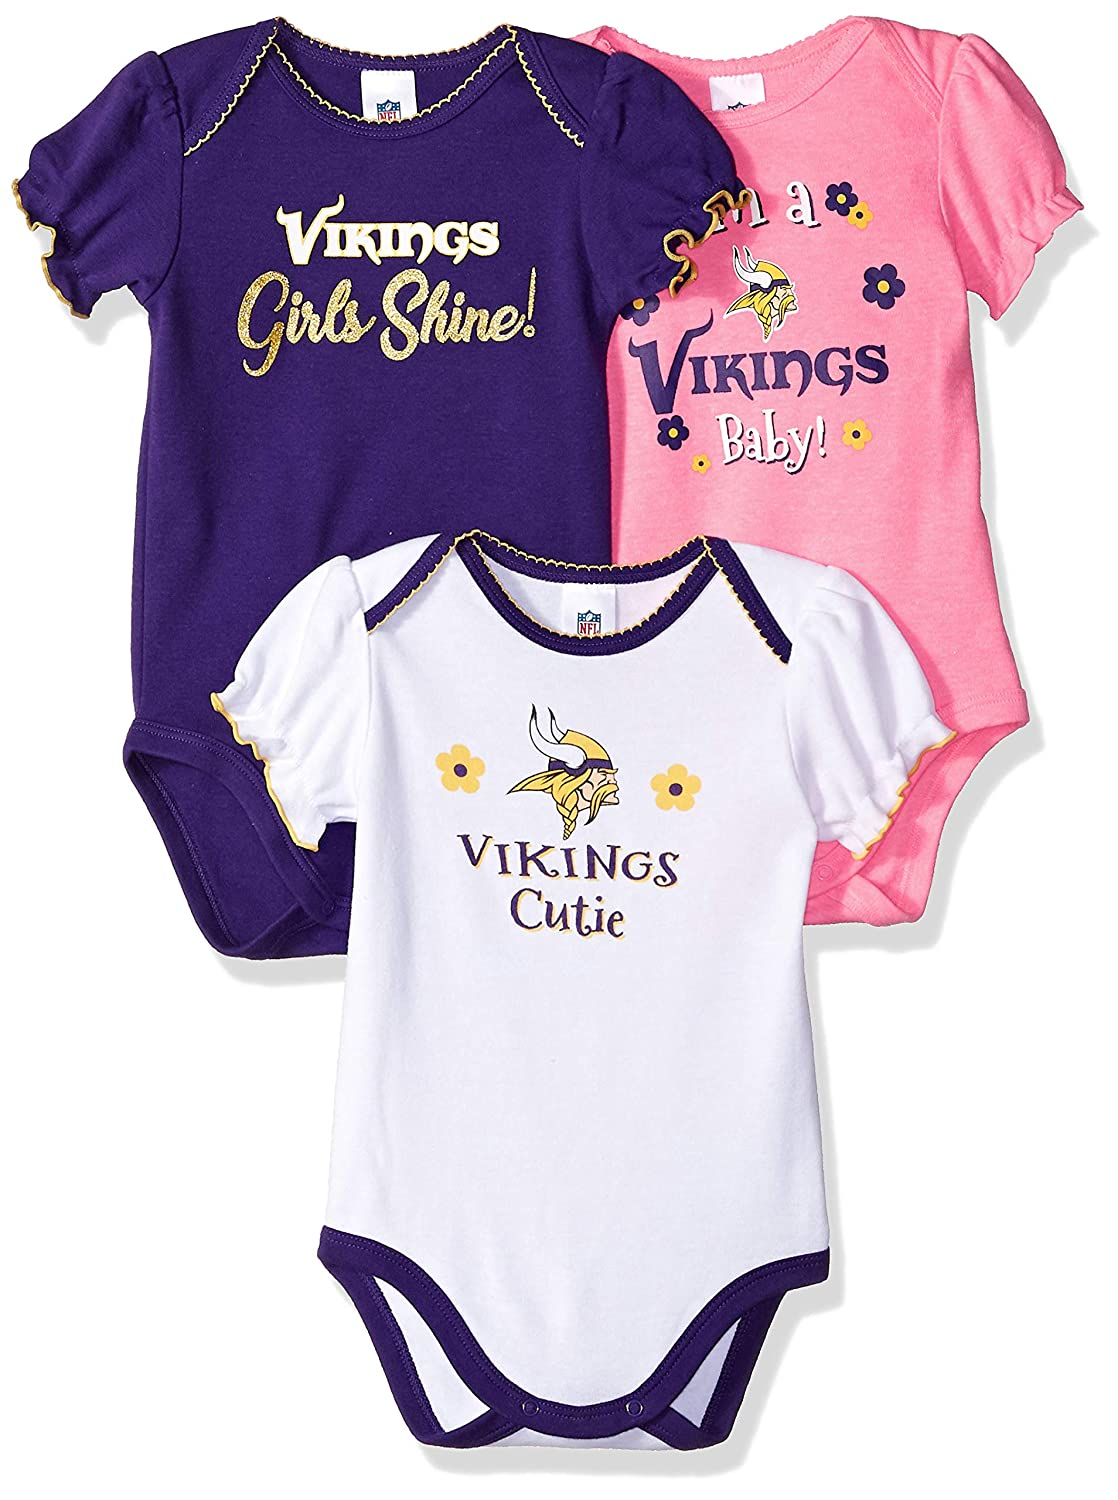 9c45e242d Amazon.com : NFL Minnesota Vikings Baby-Girls 3-Pack Short Sleeve  Bodysuits, Pink, 6-12 Months : Sports & Outdoors